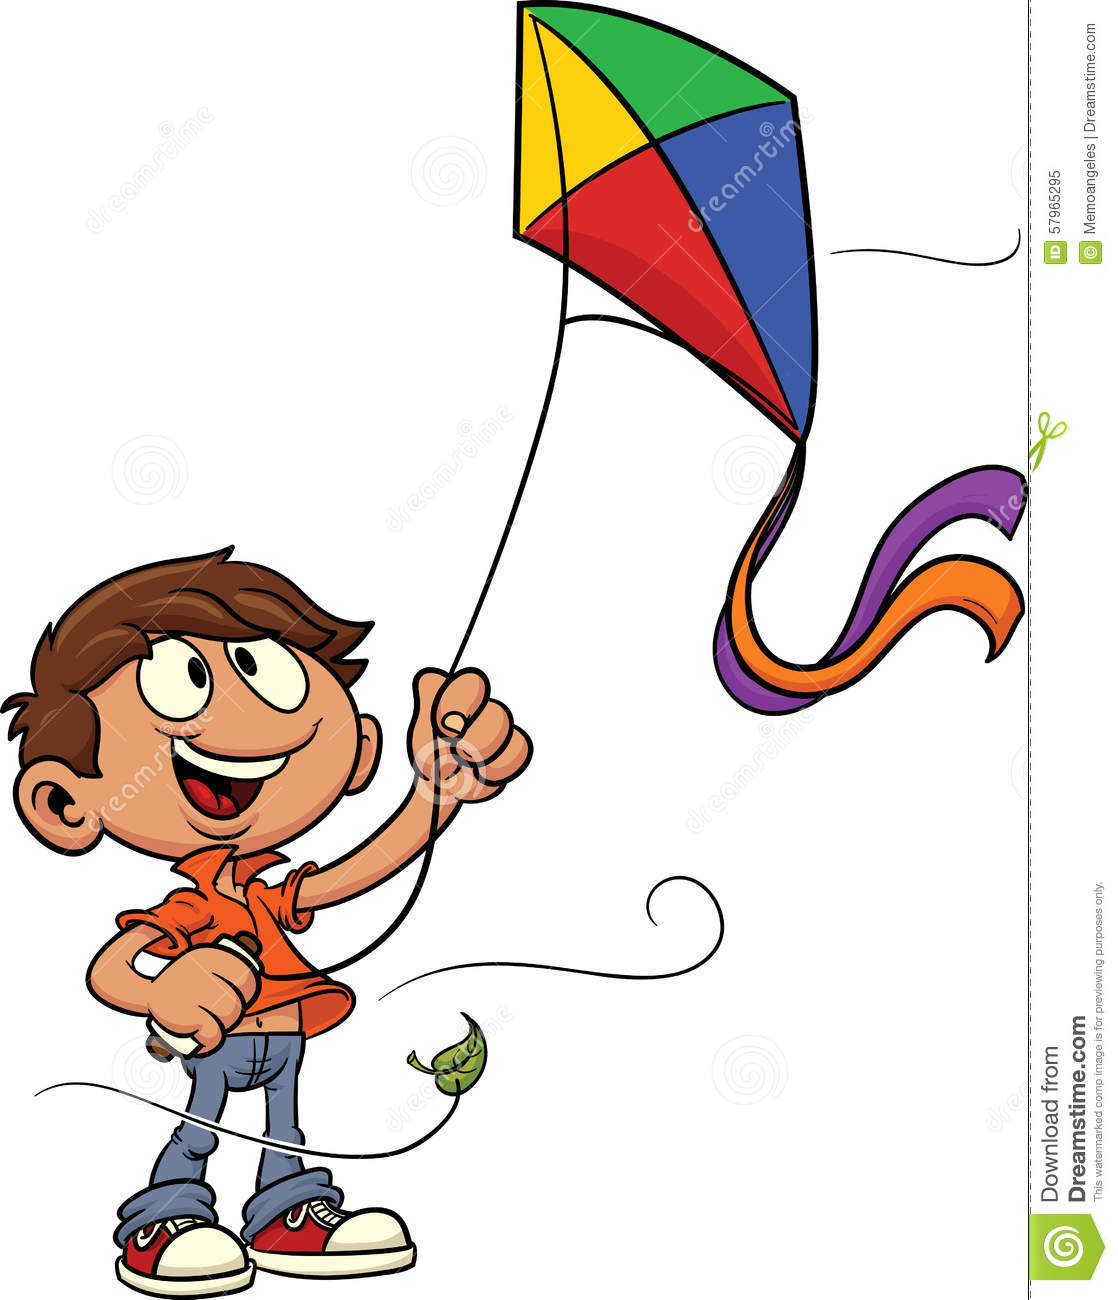 Free Kite Flying Cliparts, Download Free Kite Flying ... (1118 x 1300 Pixel)